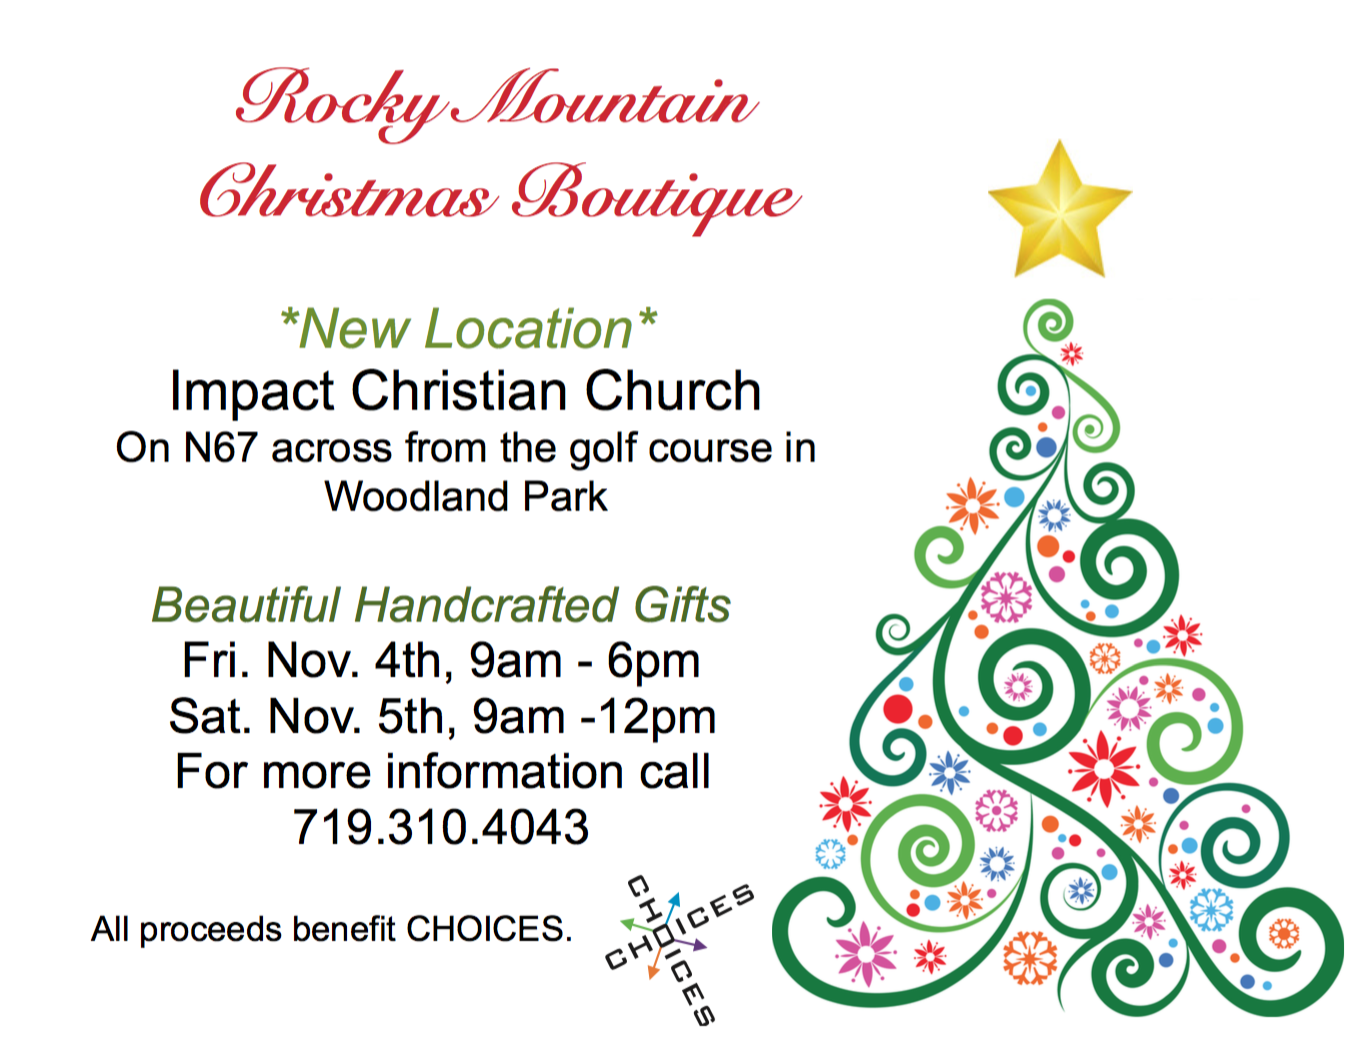 Rocky Mountain Christmas Boutique Choices At Impact Christian Church Woodland Park Co Free Events